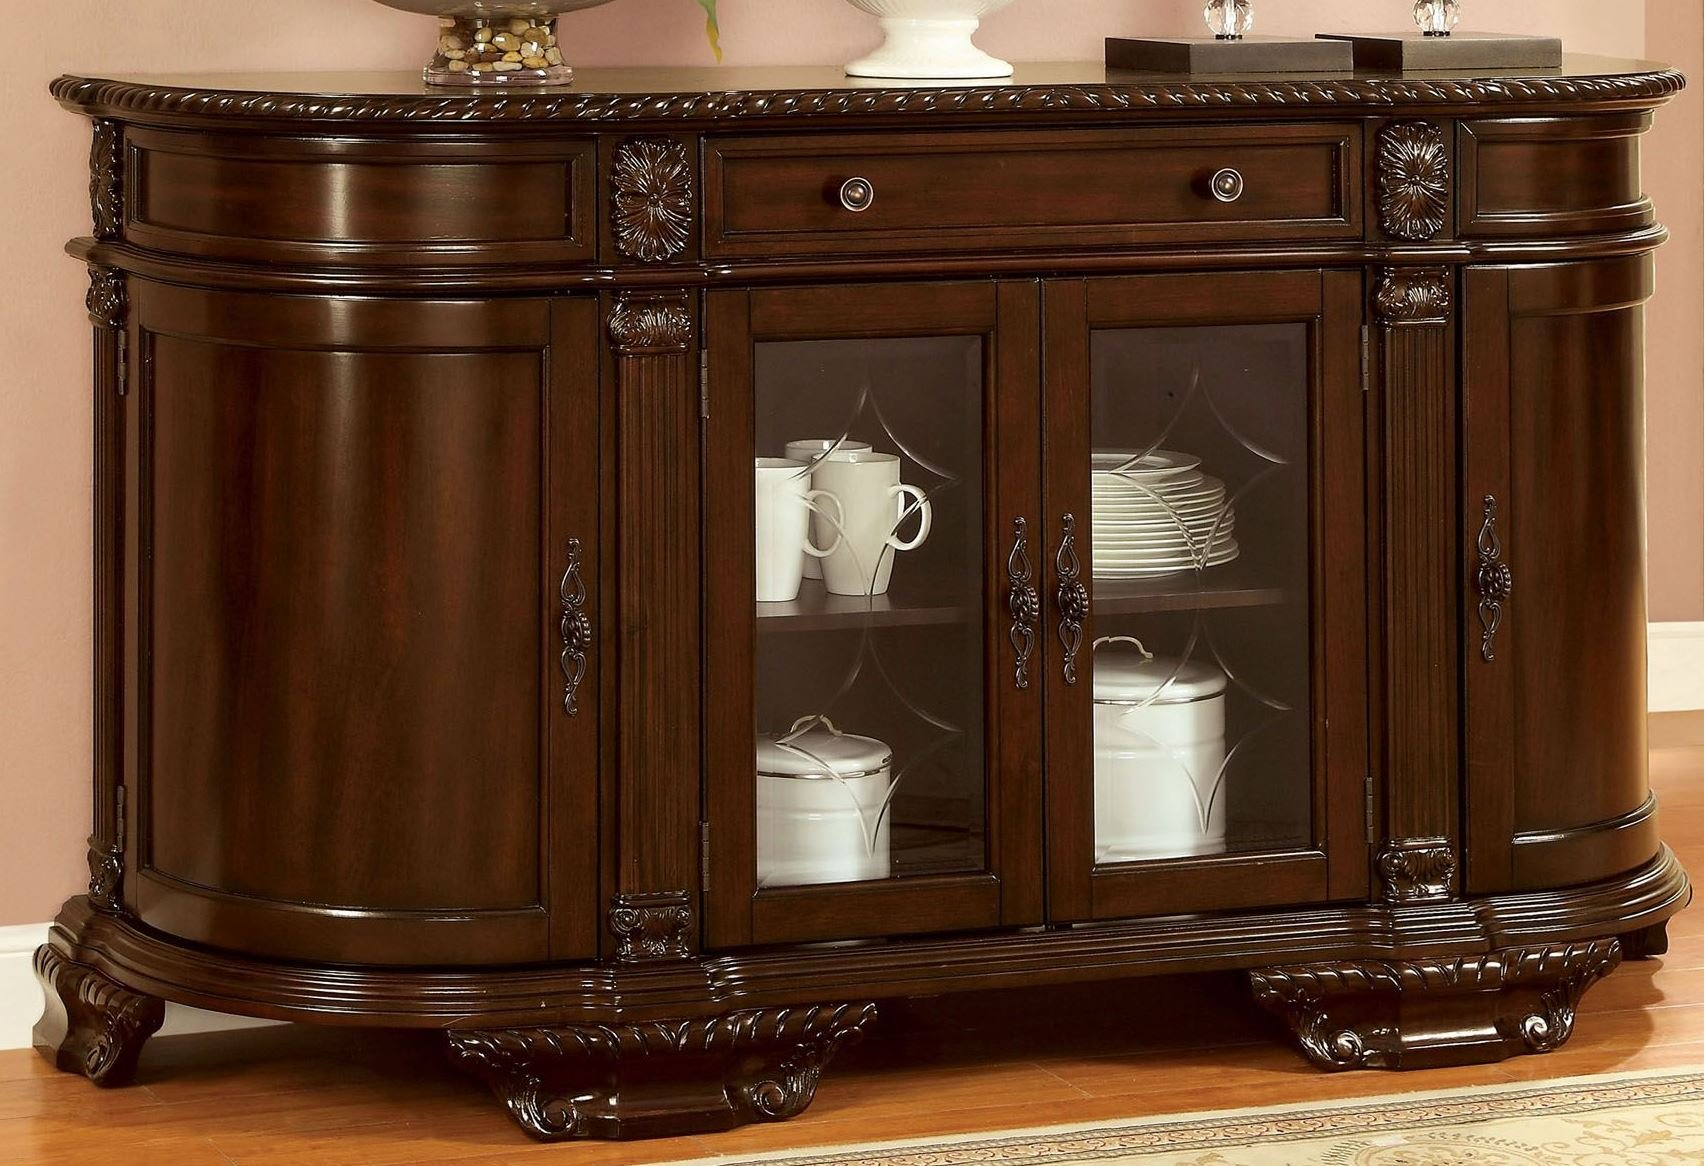 Furniture of America CM3319SV Bellagio Brown Cherry Server Dining Room Buffet by Furniture of America